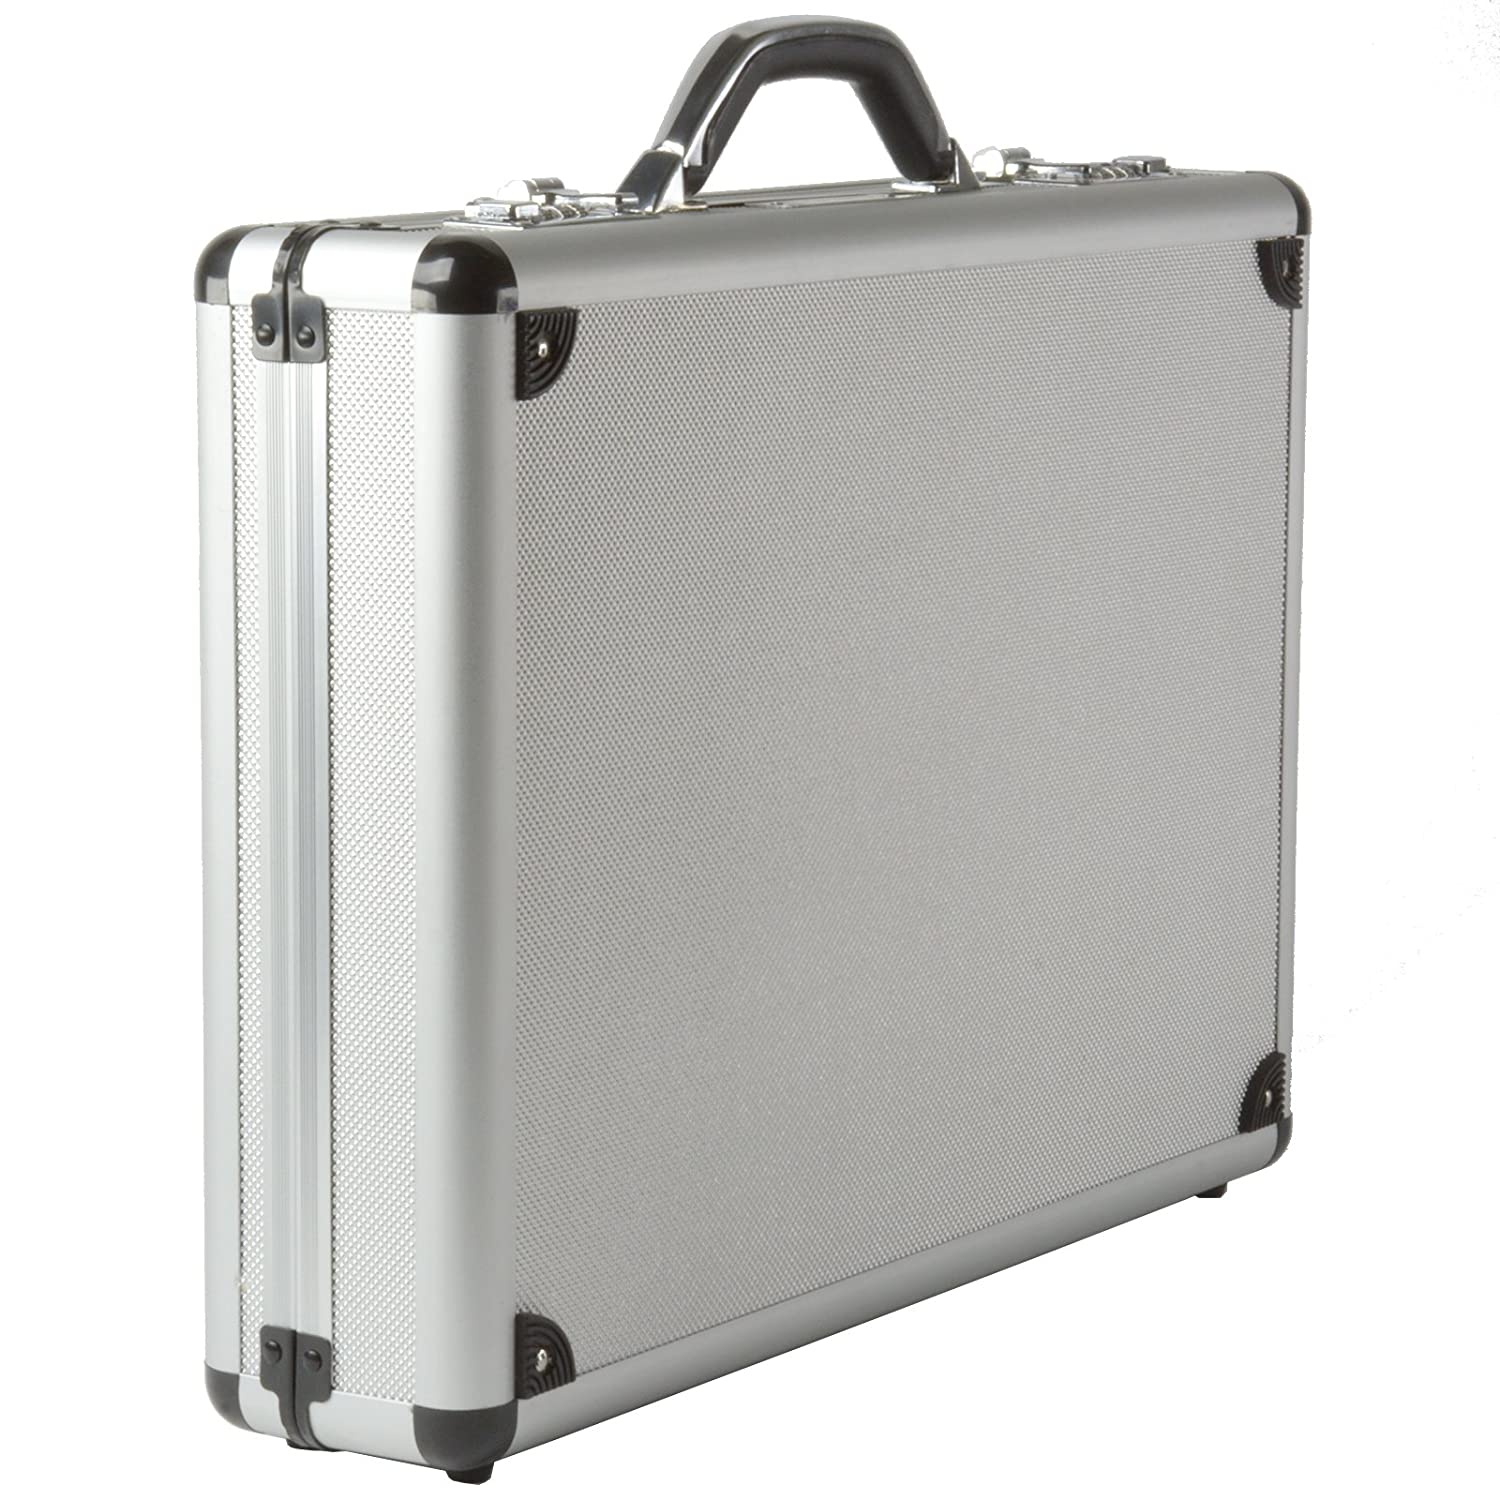 Alpine Swiss Aluminum Attaché Case Padded Laptop Briefcase Combo Lock Hard Sided By Alpine Swiss